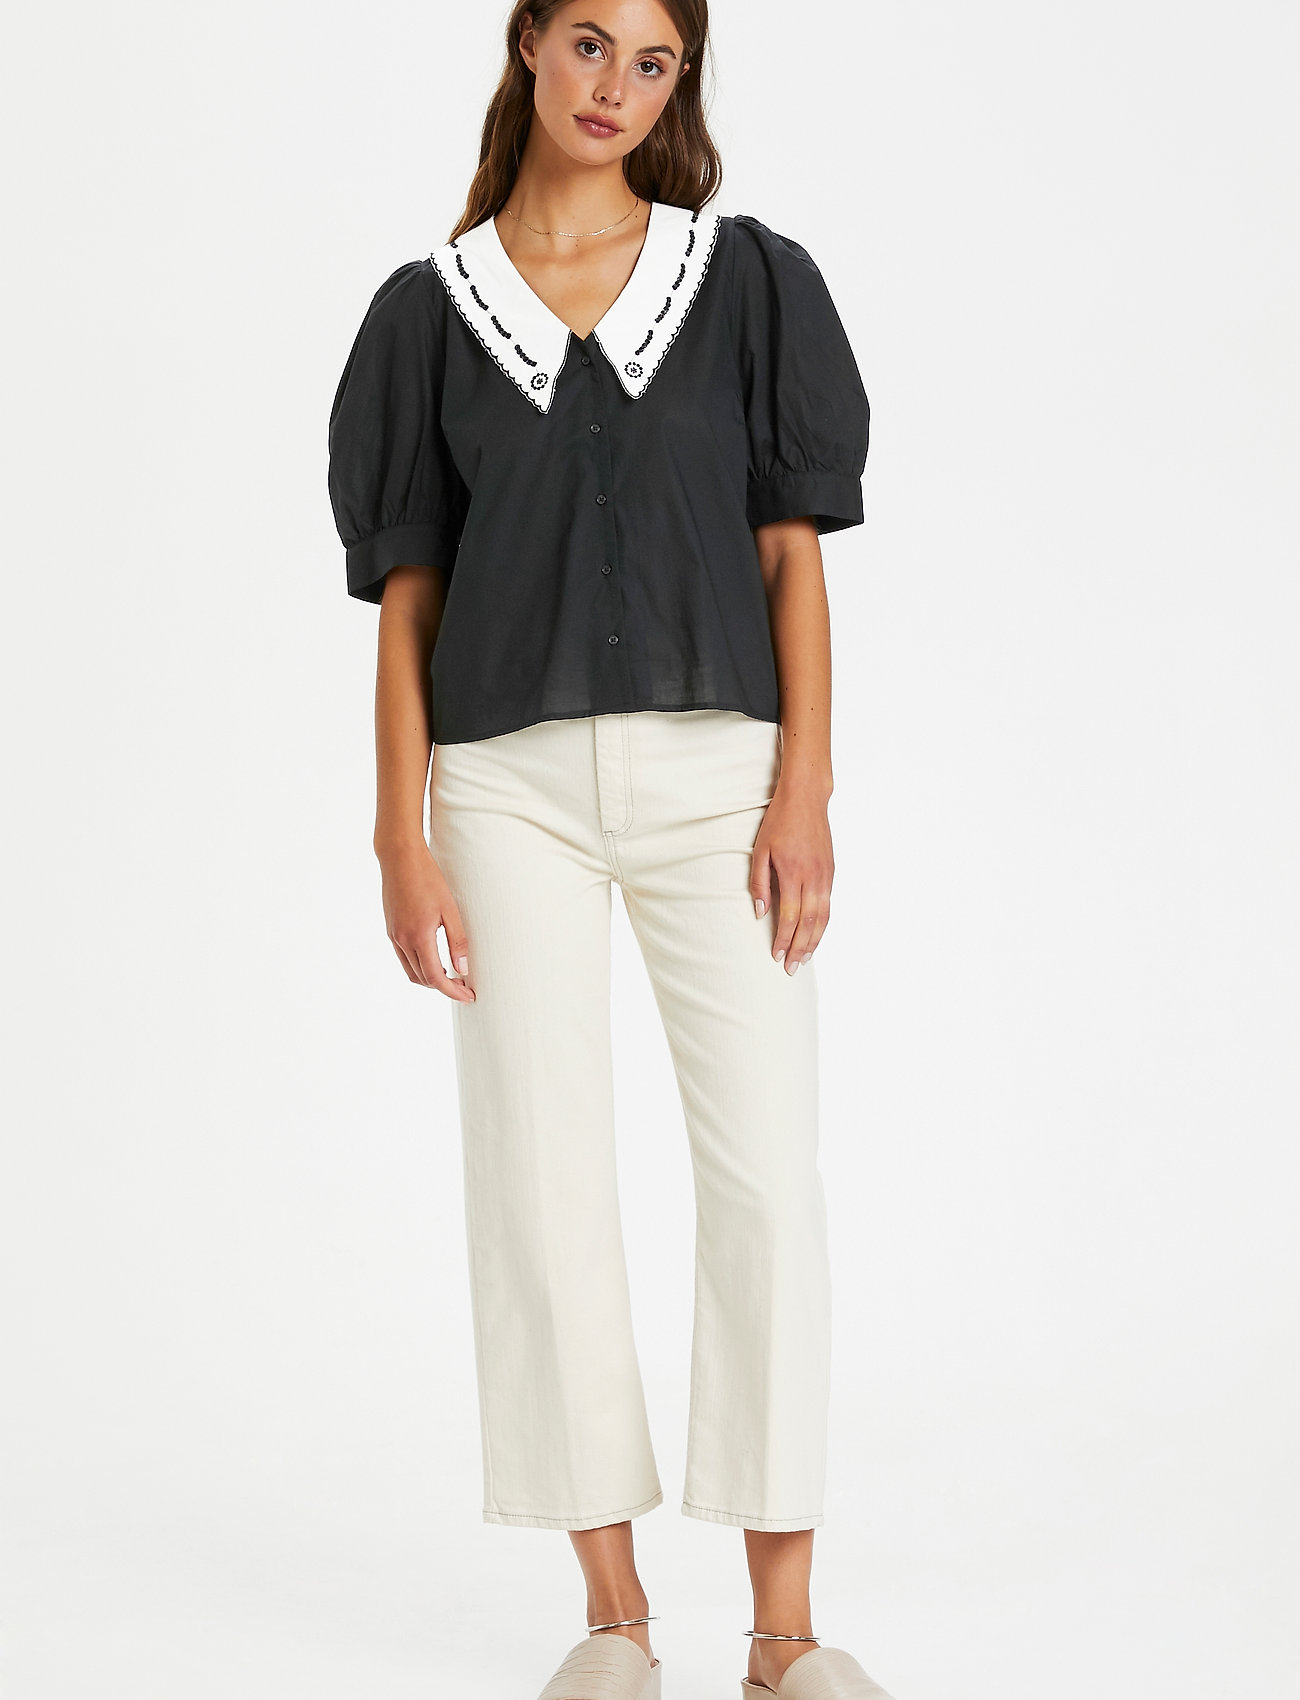 Soaked in Luxury - SLFlor Shirt - short-sleeved shirts - black - 3